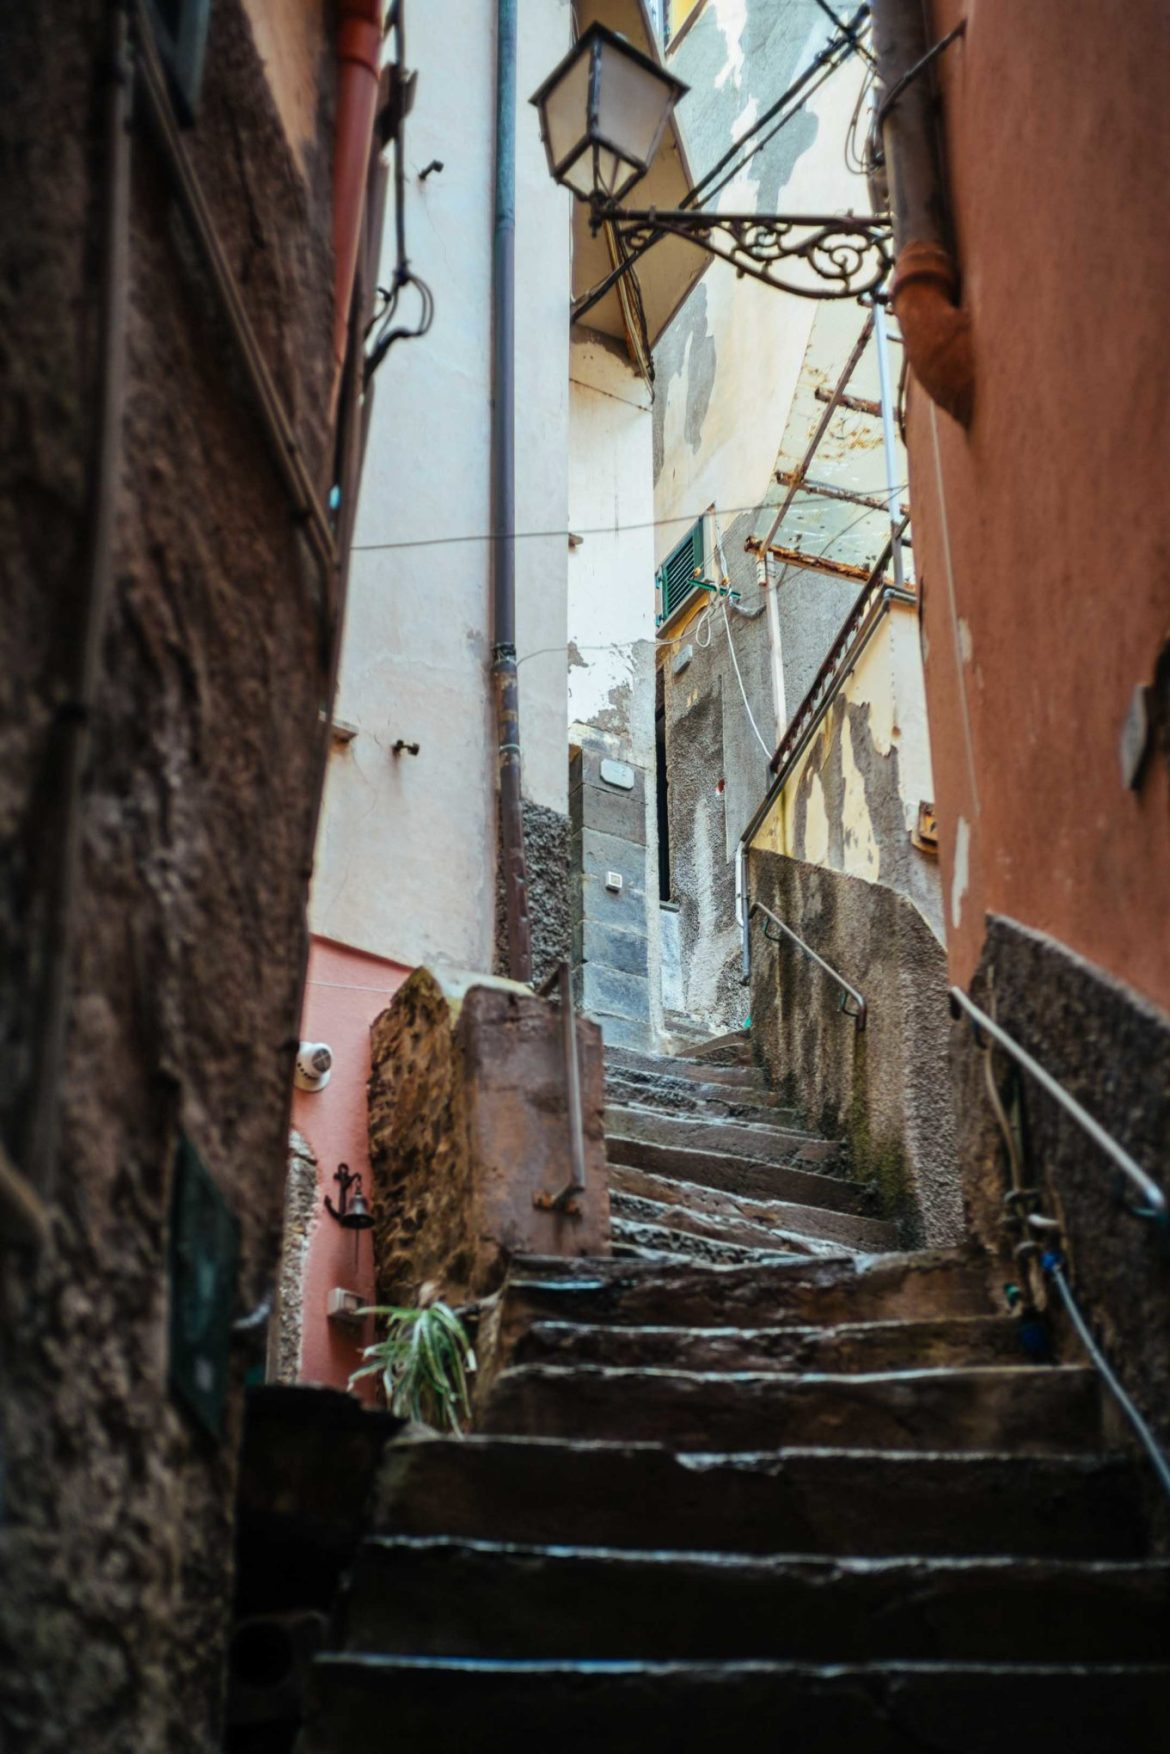 Beautiful views from the staircases of Ramagore in Cinque Terre, one of the most popular vacation destinations in Italy.